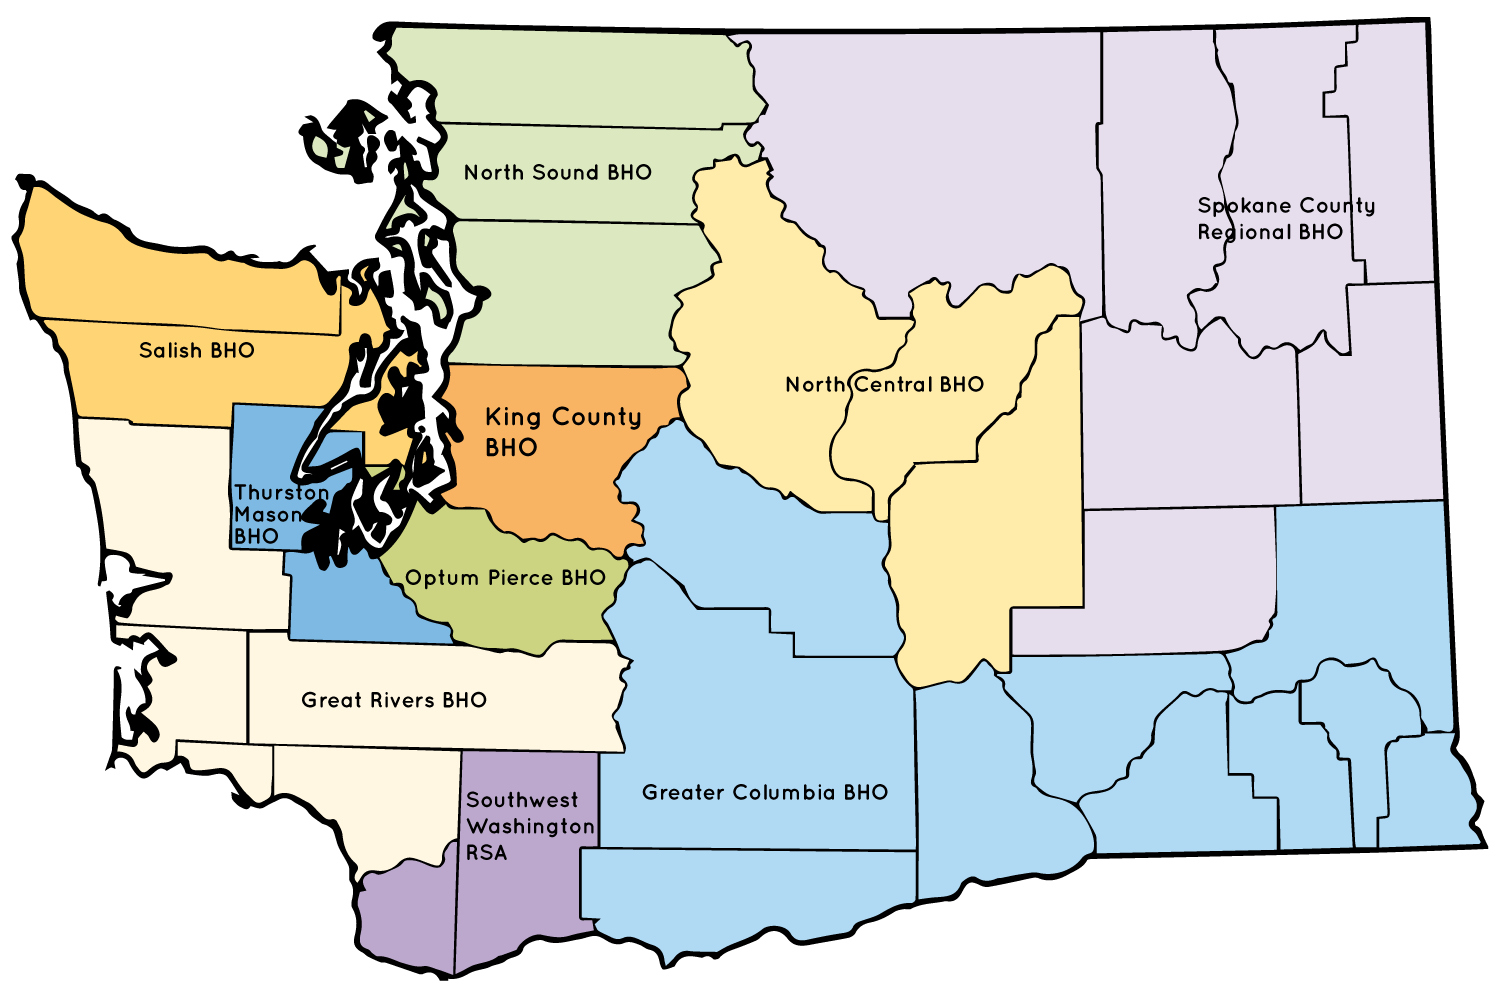 Washington State Map with FYSPRT regions